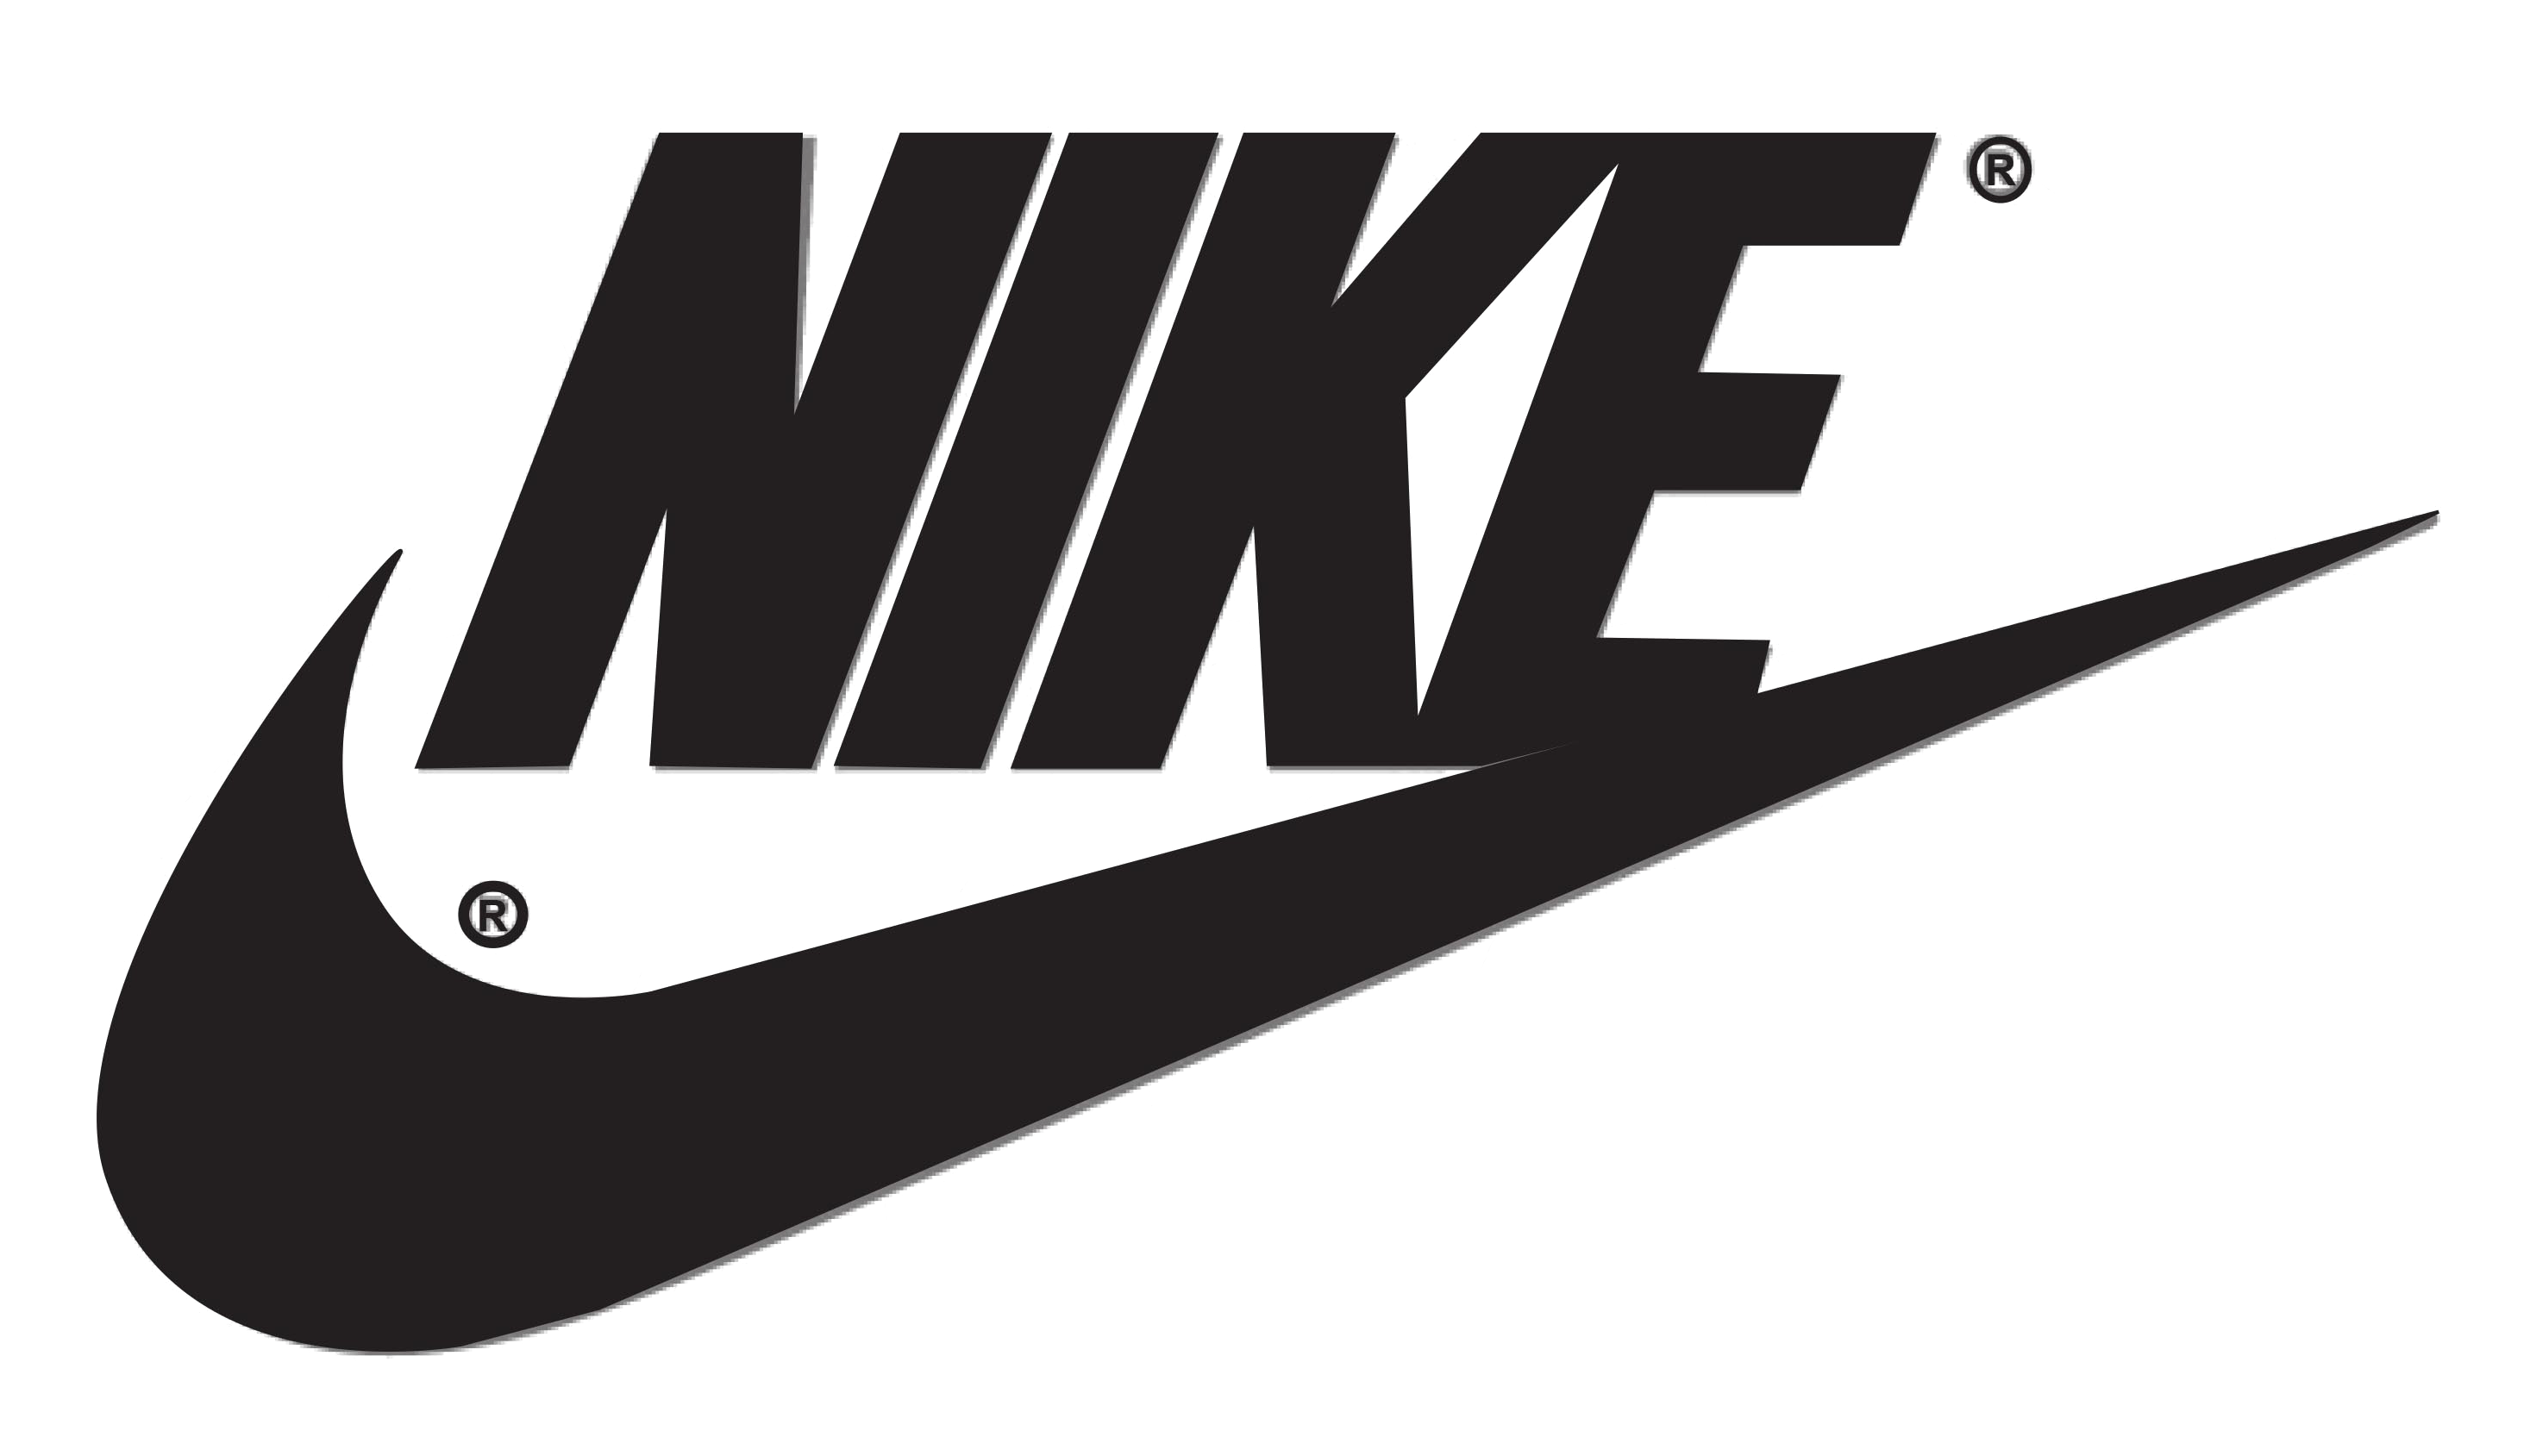 Nike Logo Transparent Background-Nike Logo Transparent Background-14